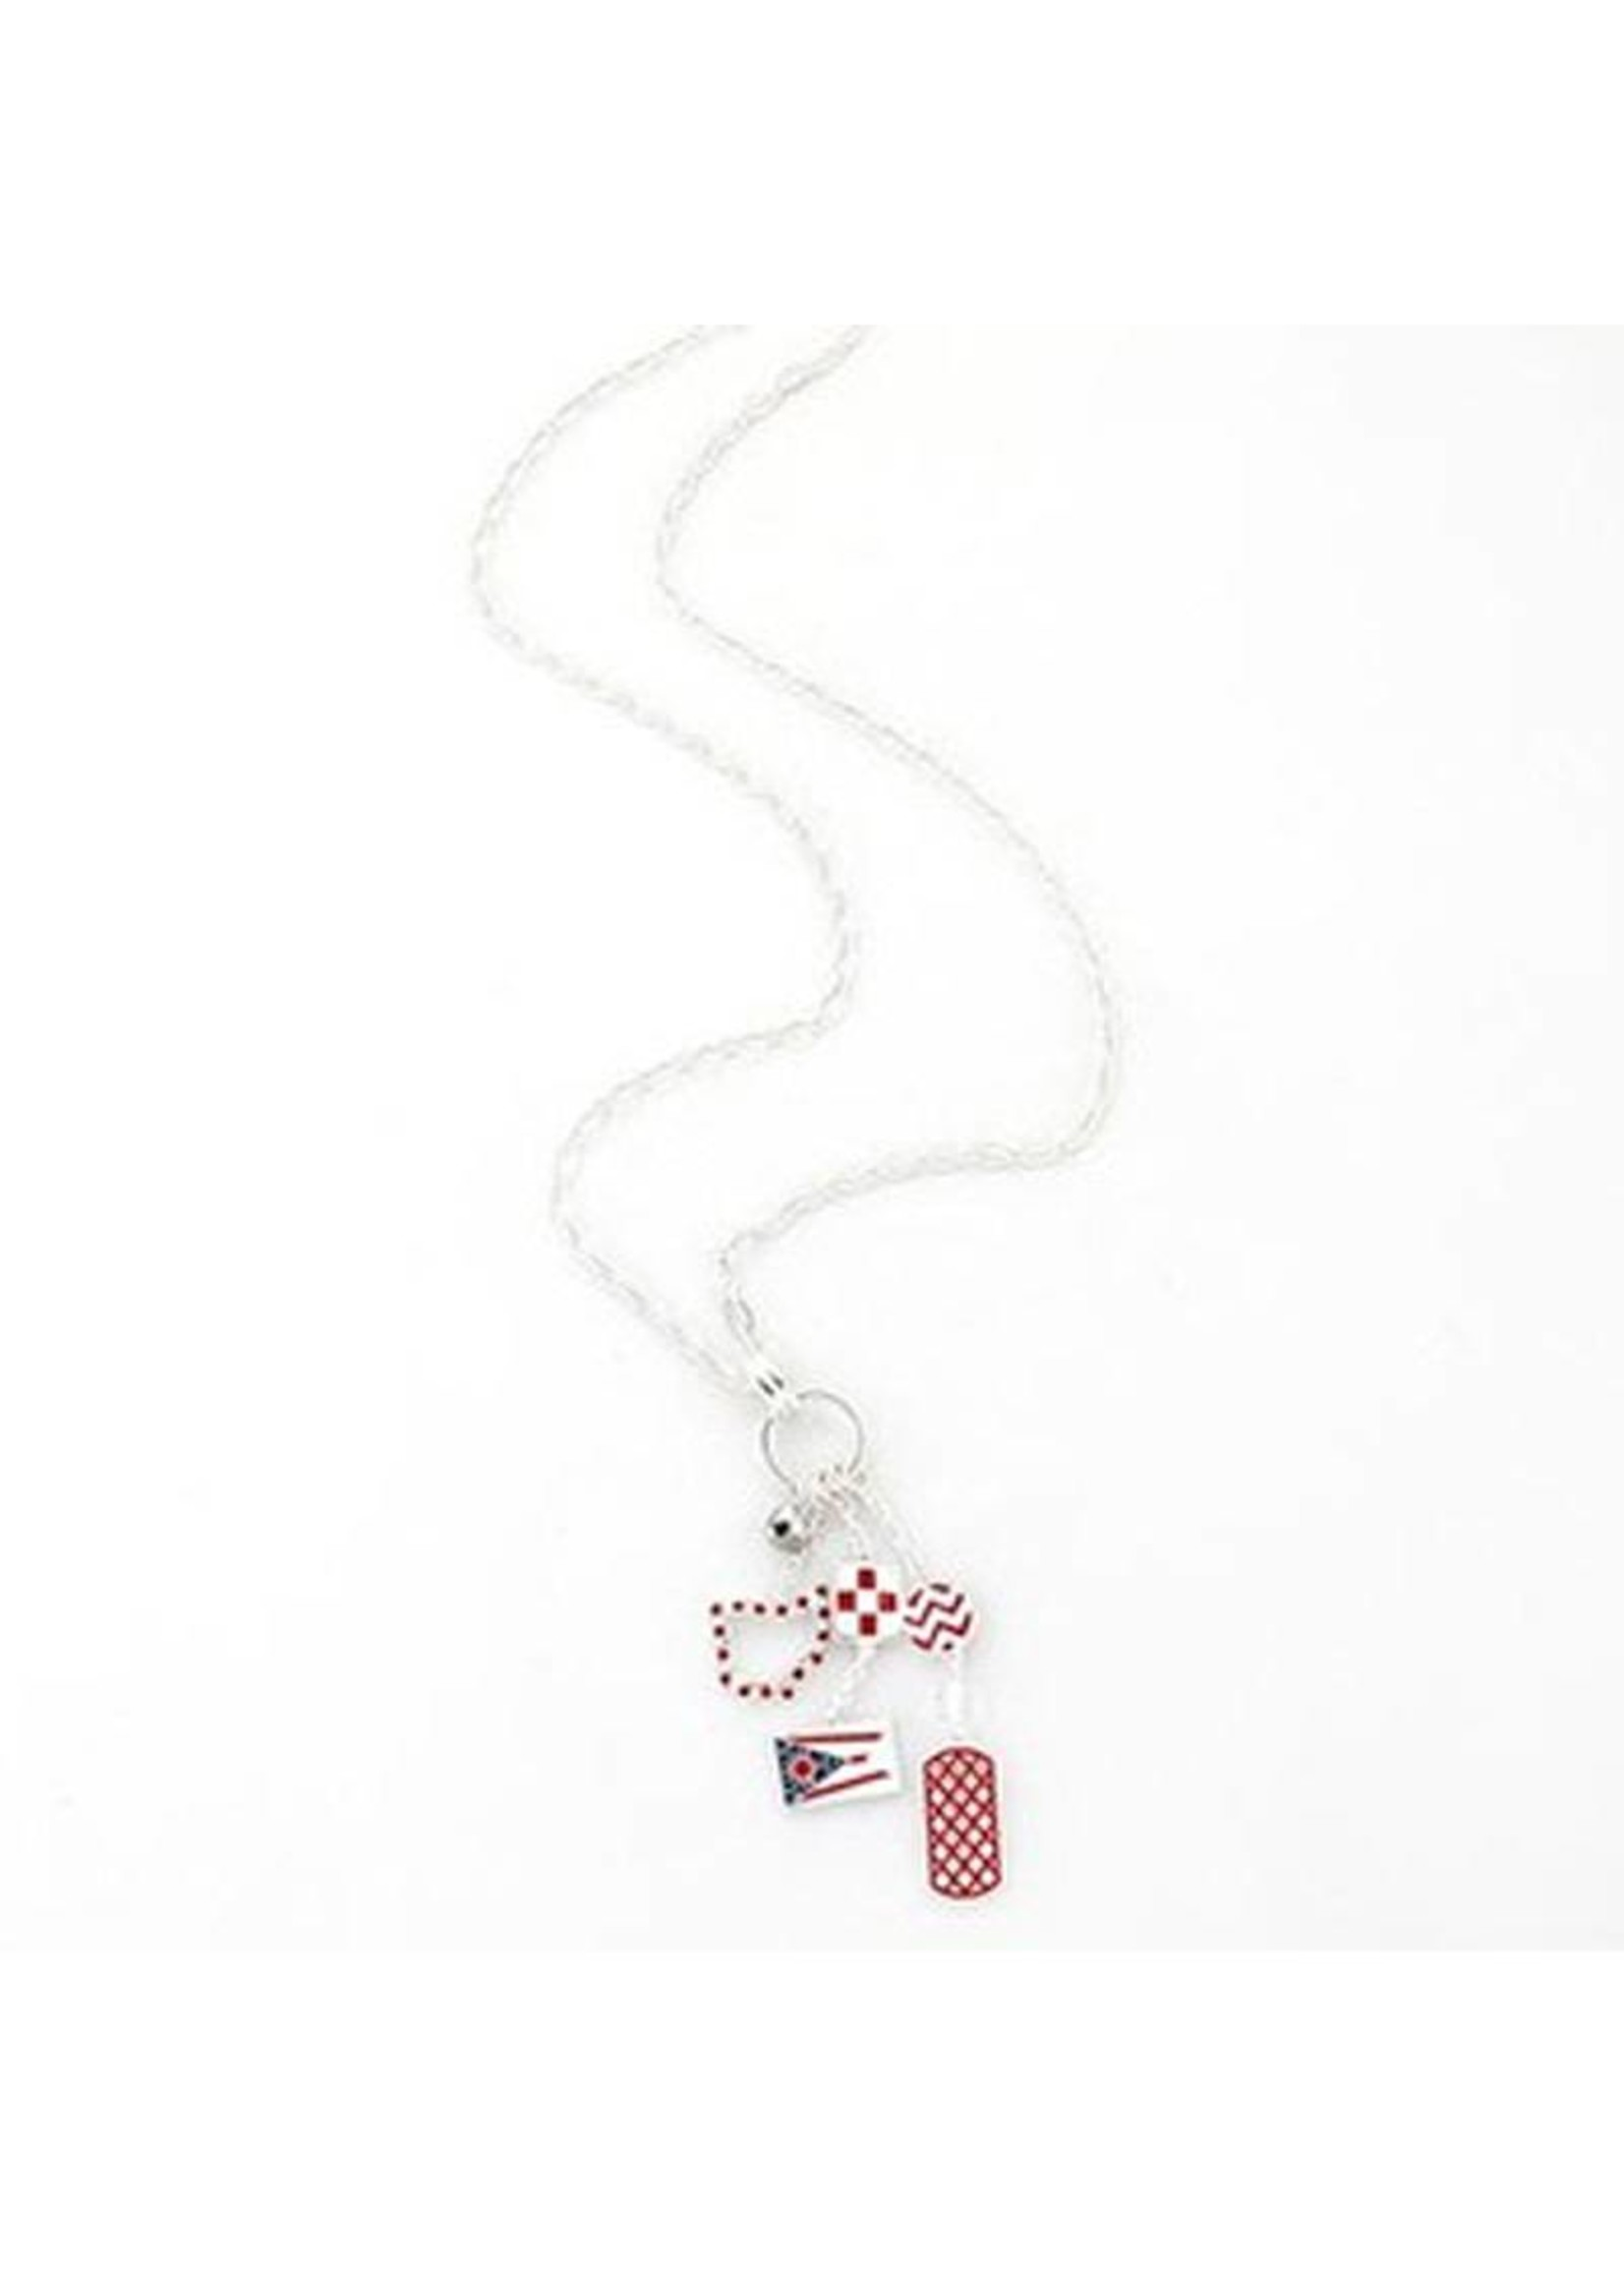 Ohio Cluster Flag Necklace